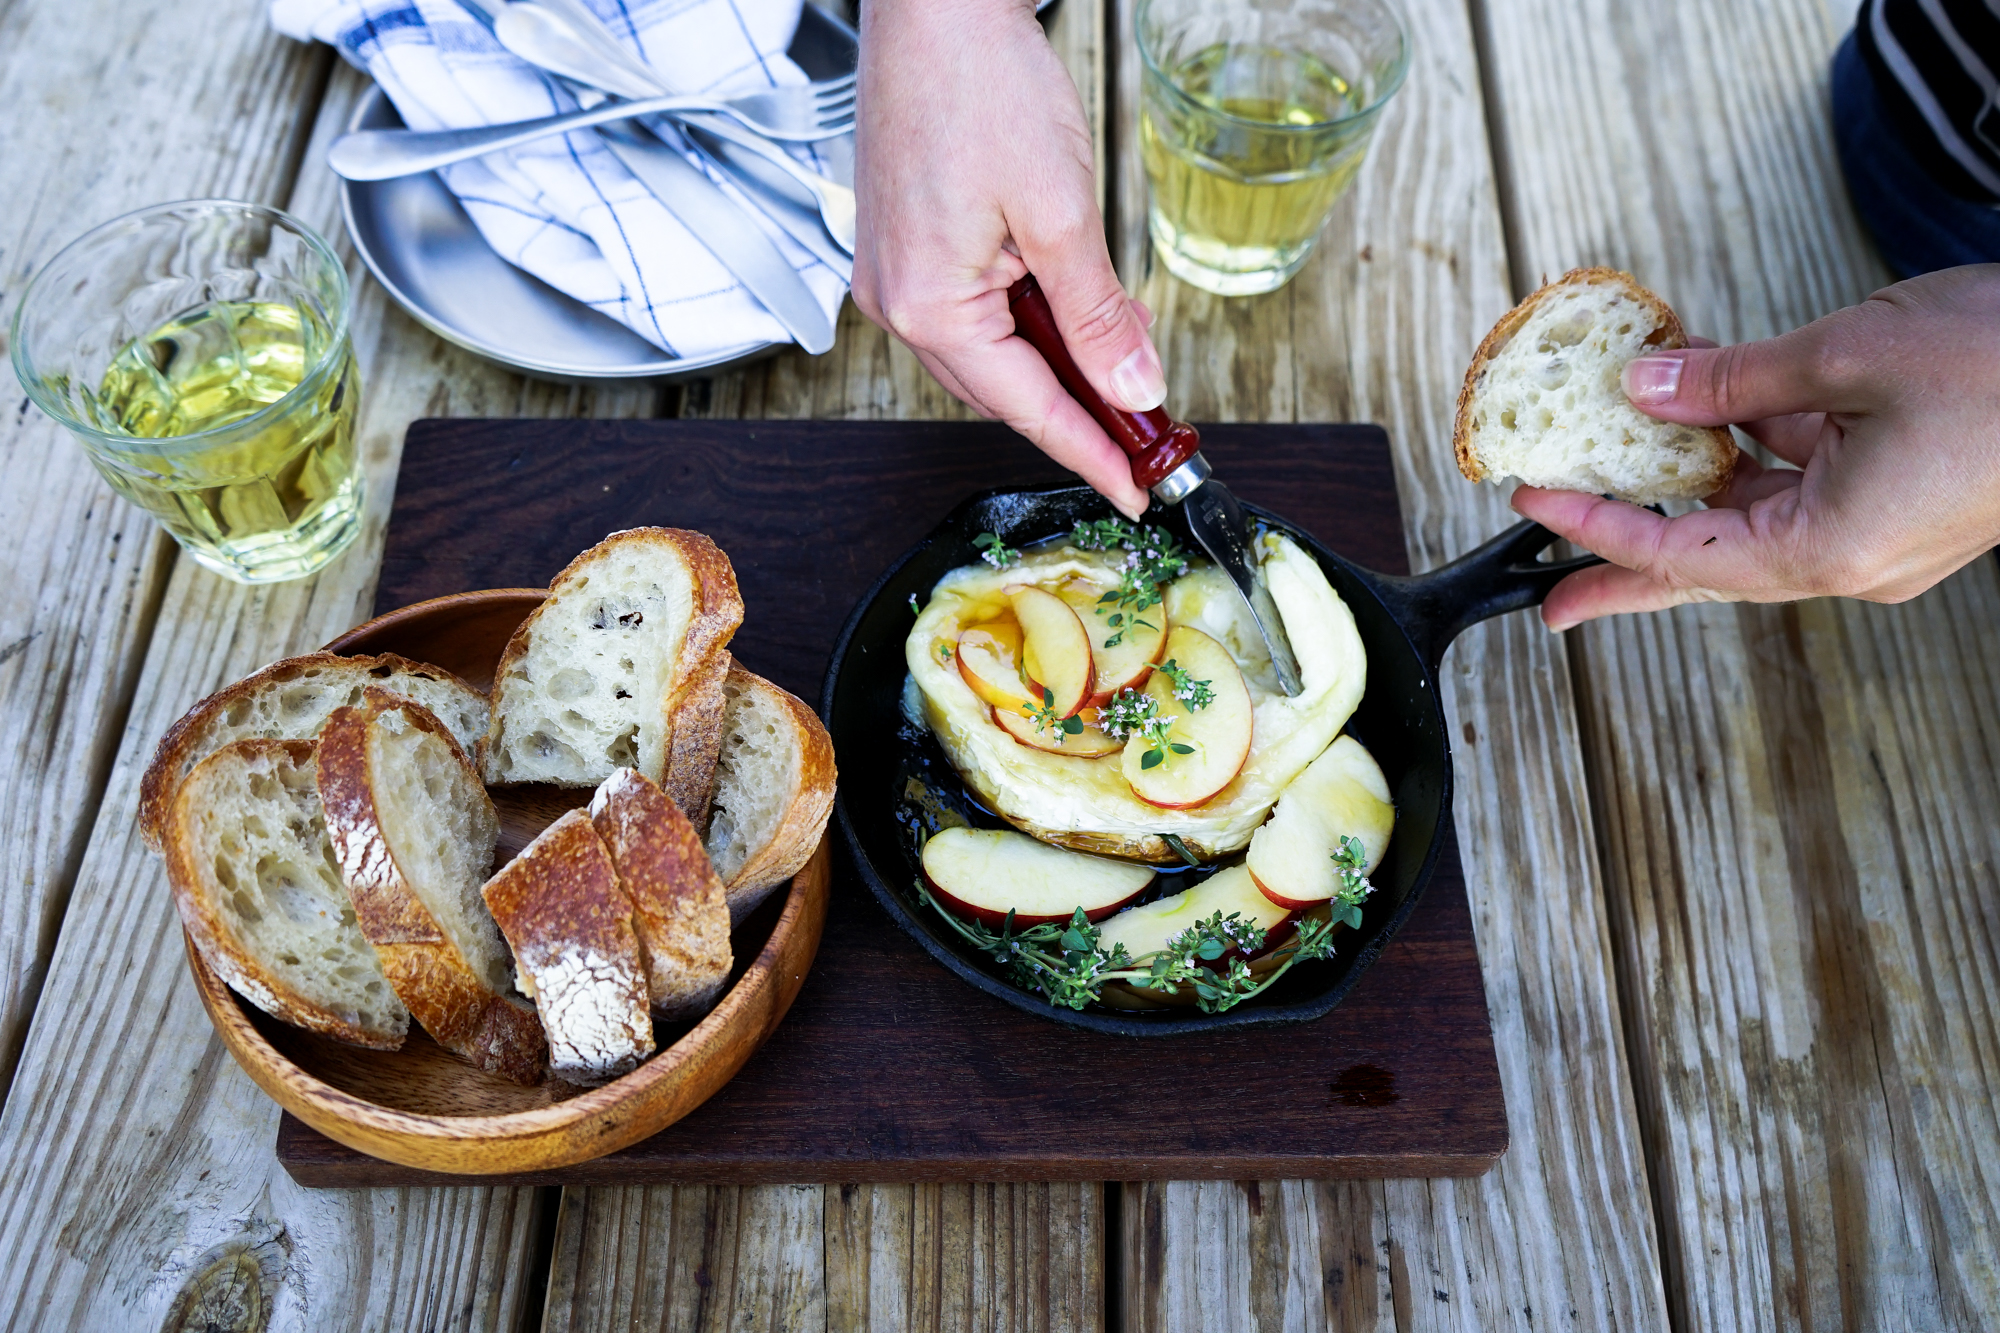 Camp Fire Baked Brie with Chardonnay